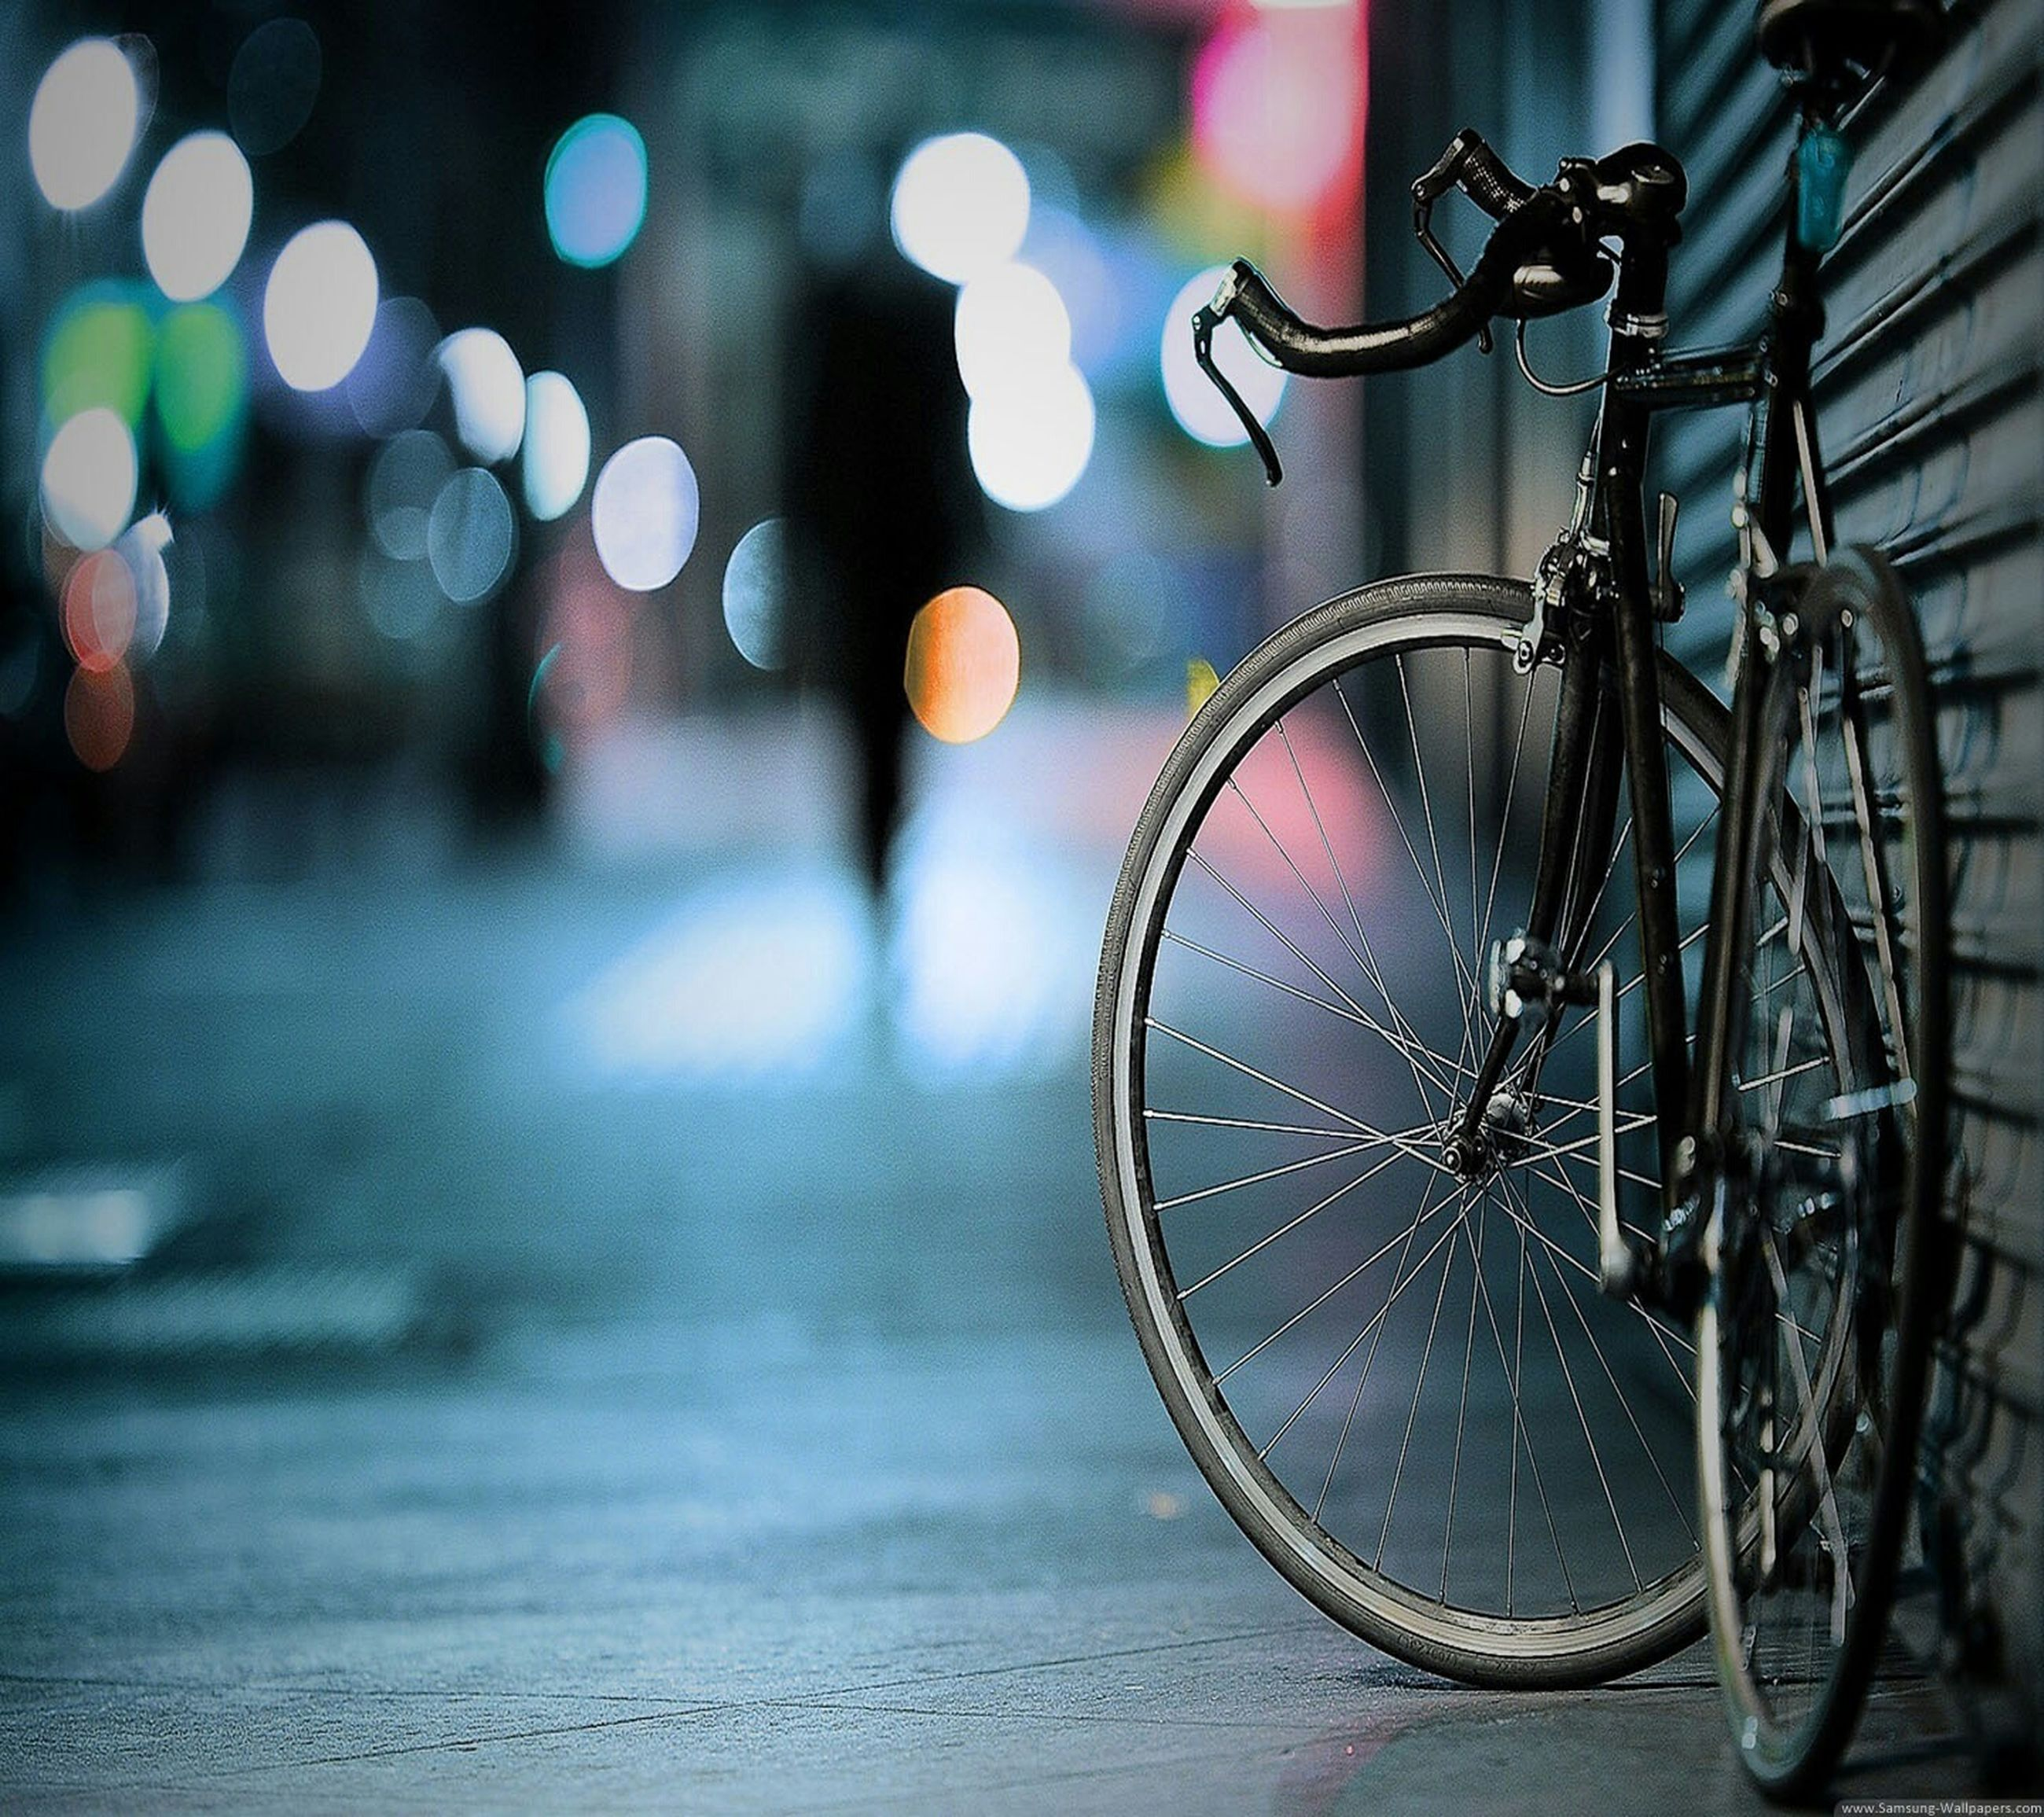 bicycle, transportation, mode of transport, ferris wheel, amusement park, land vehicle, wheel, amusement park ride, arts culture and entertainment, circle, stationary, metal, focus on foreground, outdoors, part of, built structure, street, no people, parking, architecture